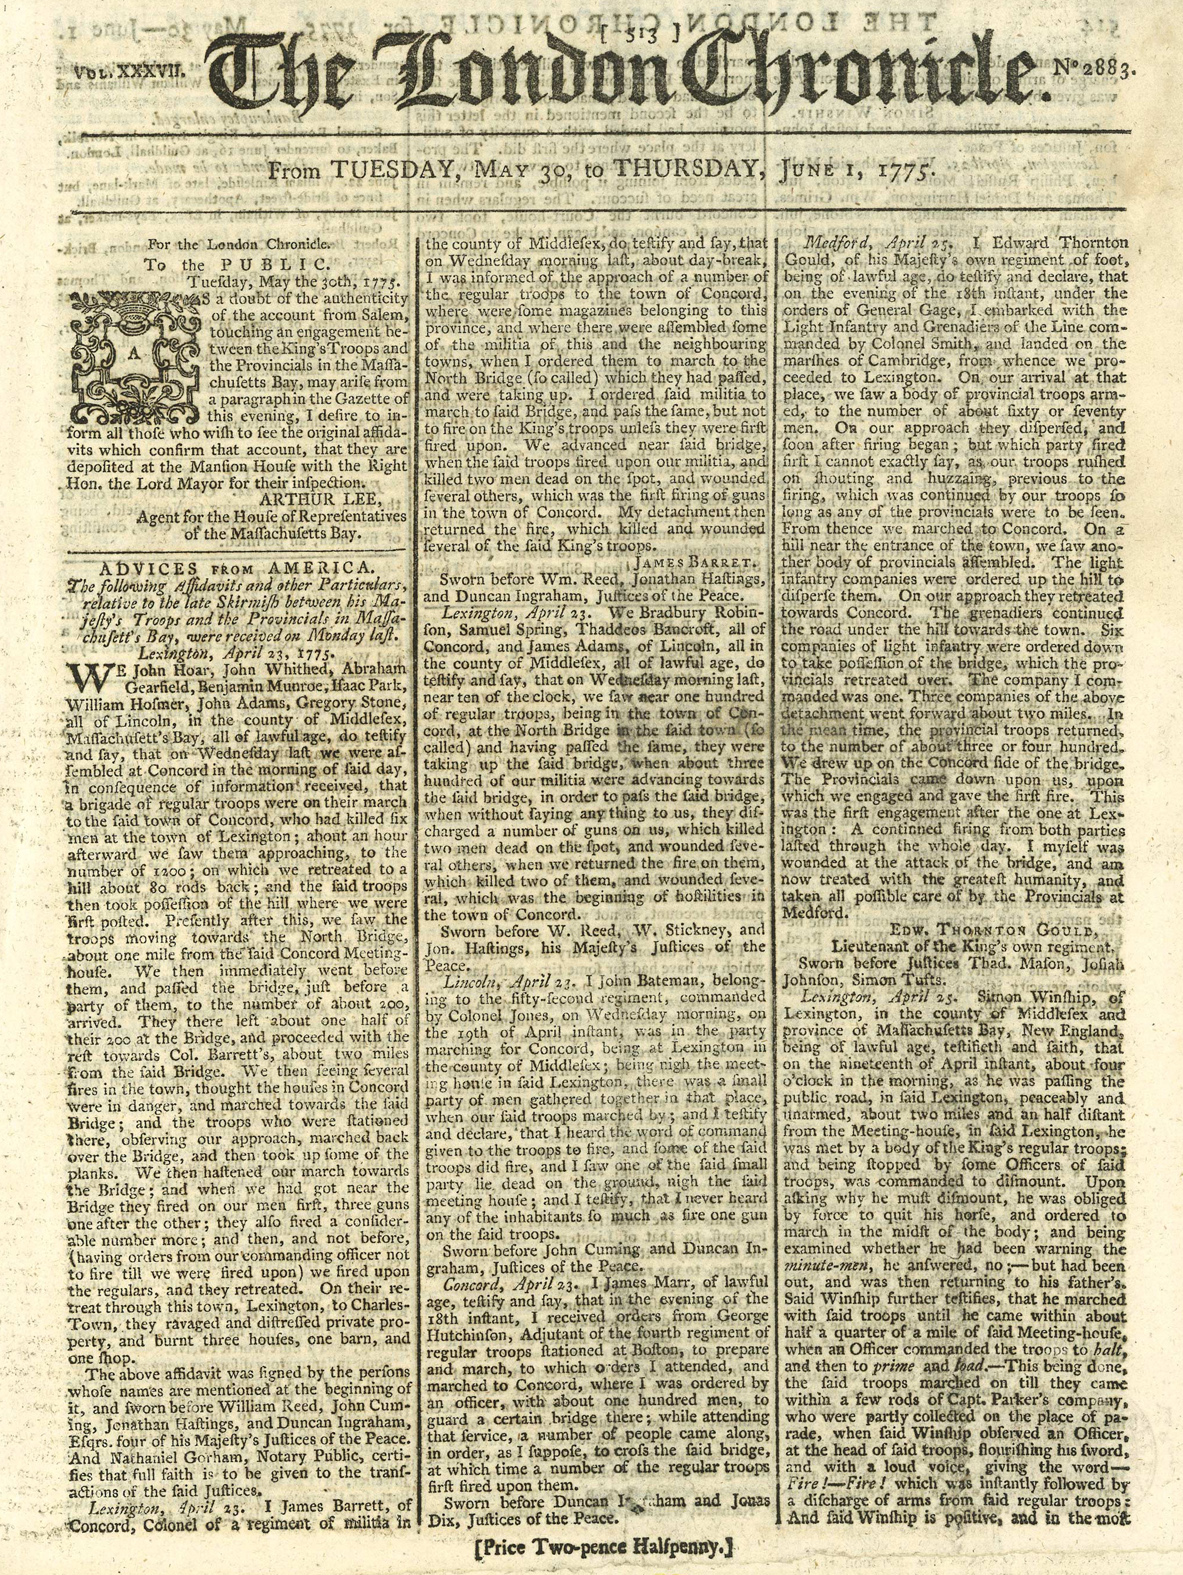 June 1, 1775, edition of The London Chronicle.